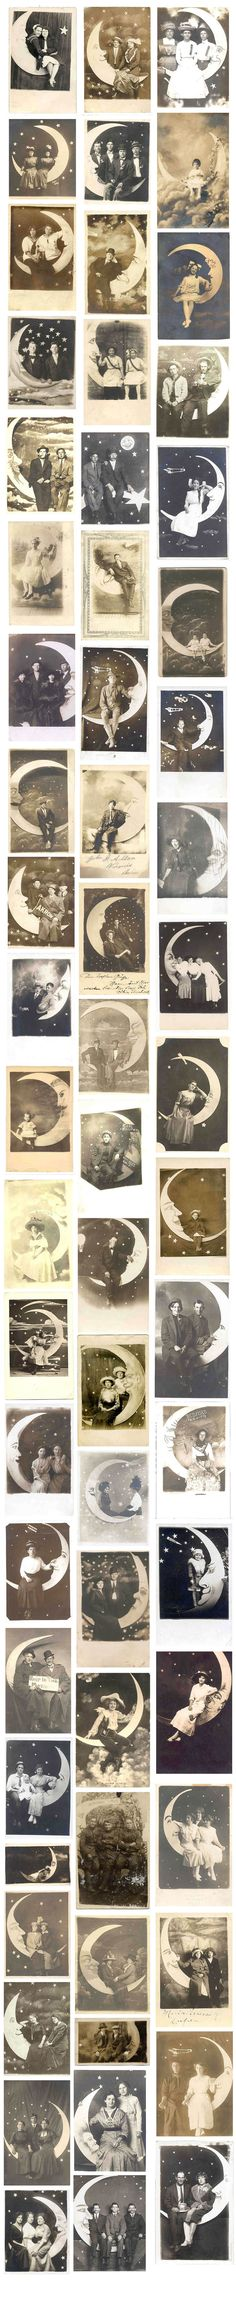 Sitting on a paper moon, 1910s-1940s Retronaut   Retronaut - See the past like you wouldn't believe.